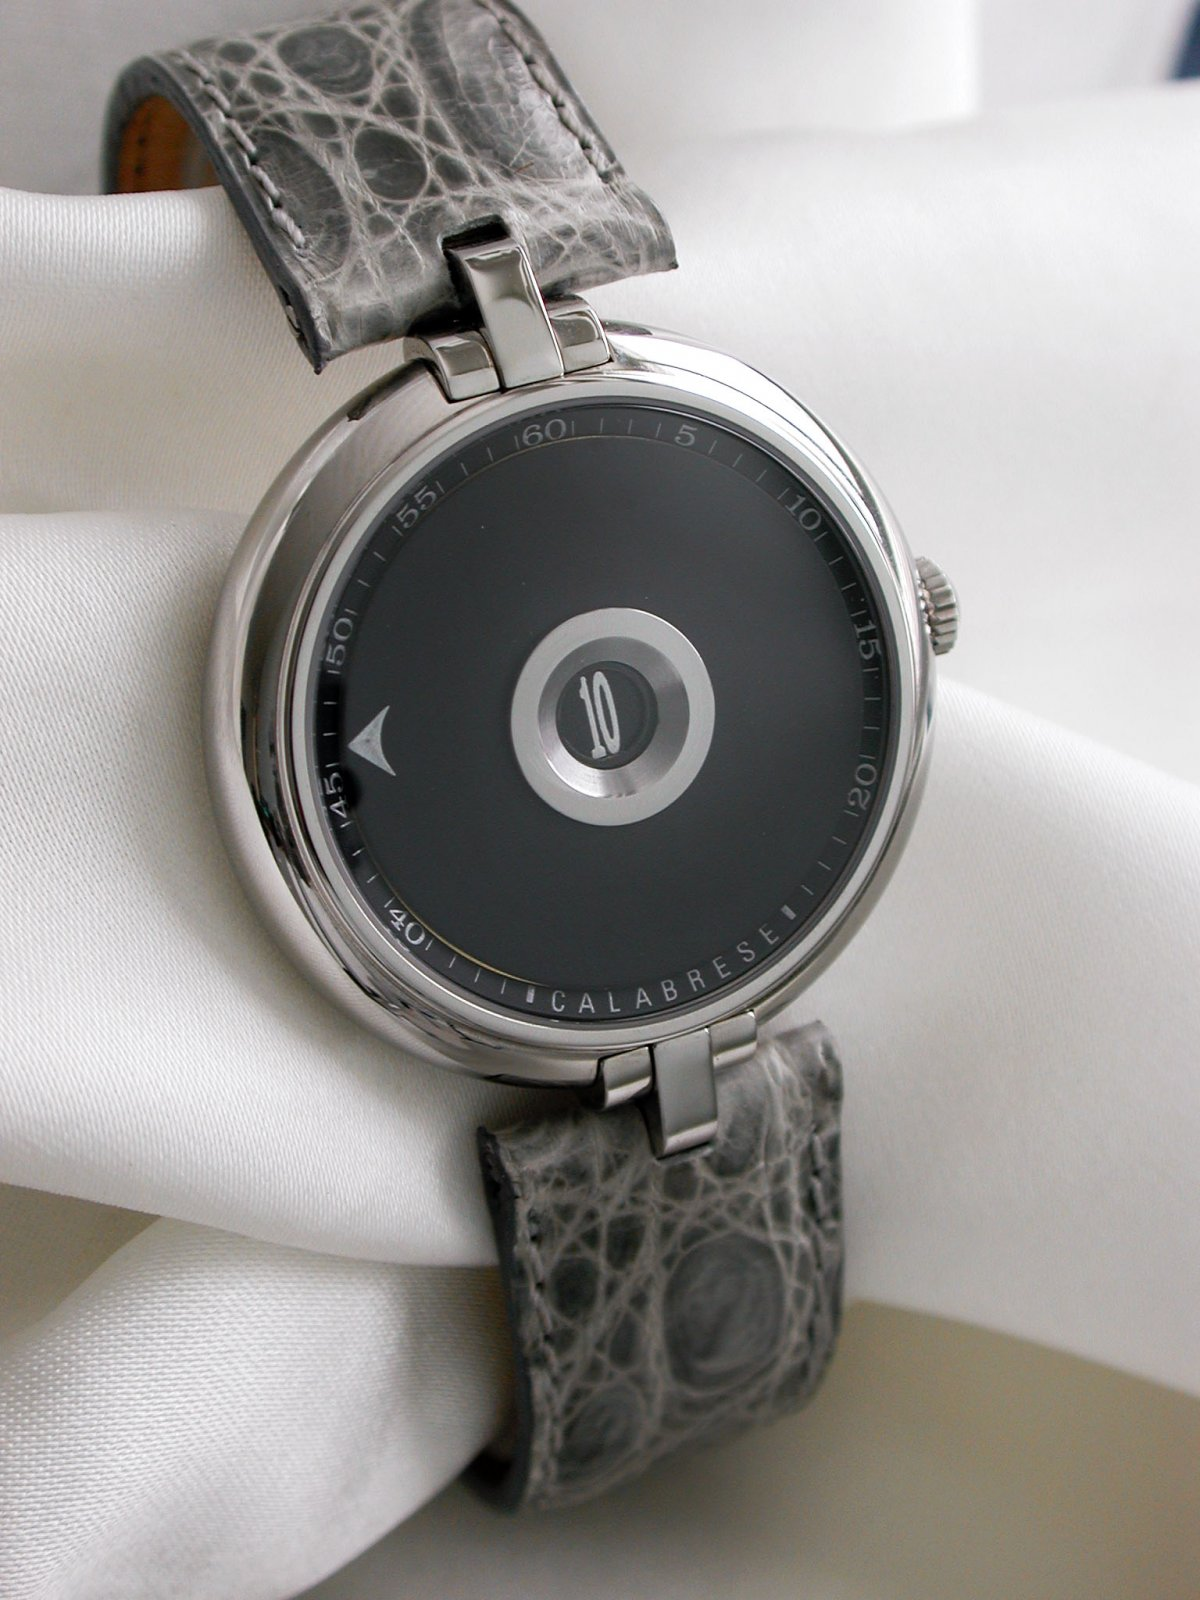 Изображение: livening-russia.ru discover a large selection of vincent calabrese watches on chrono24 - the worldwide marketplace for luxury watches.